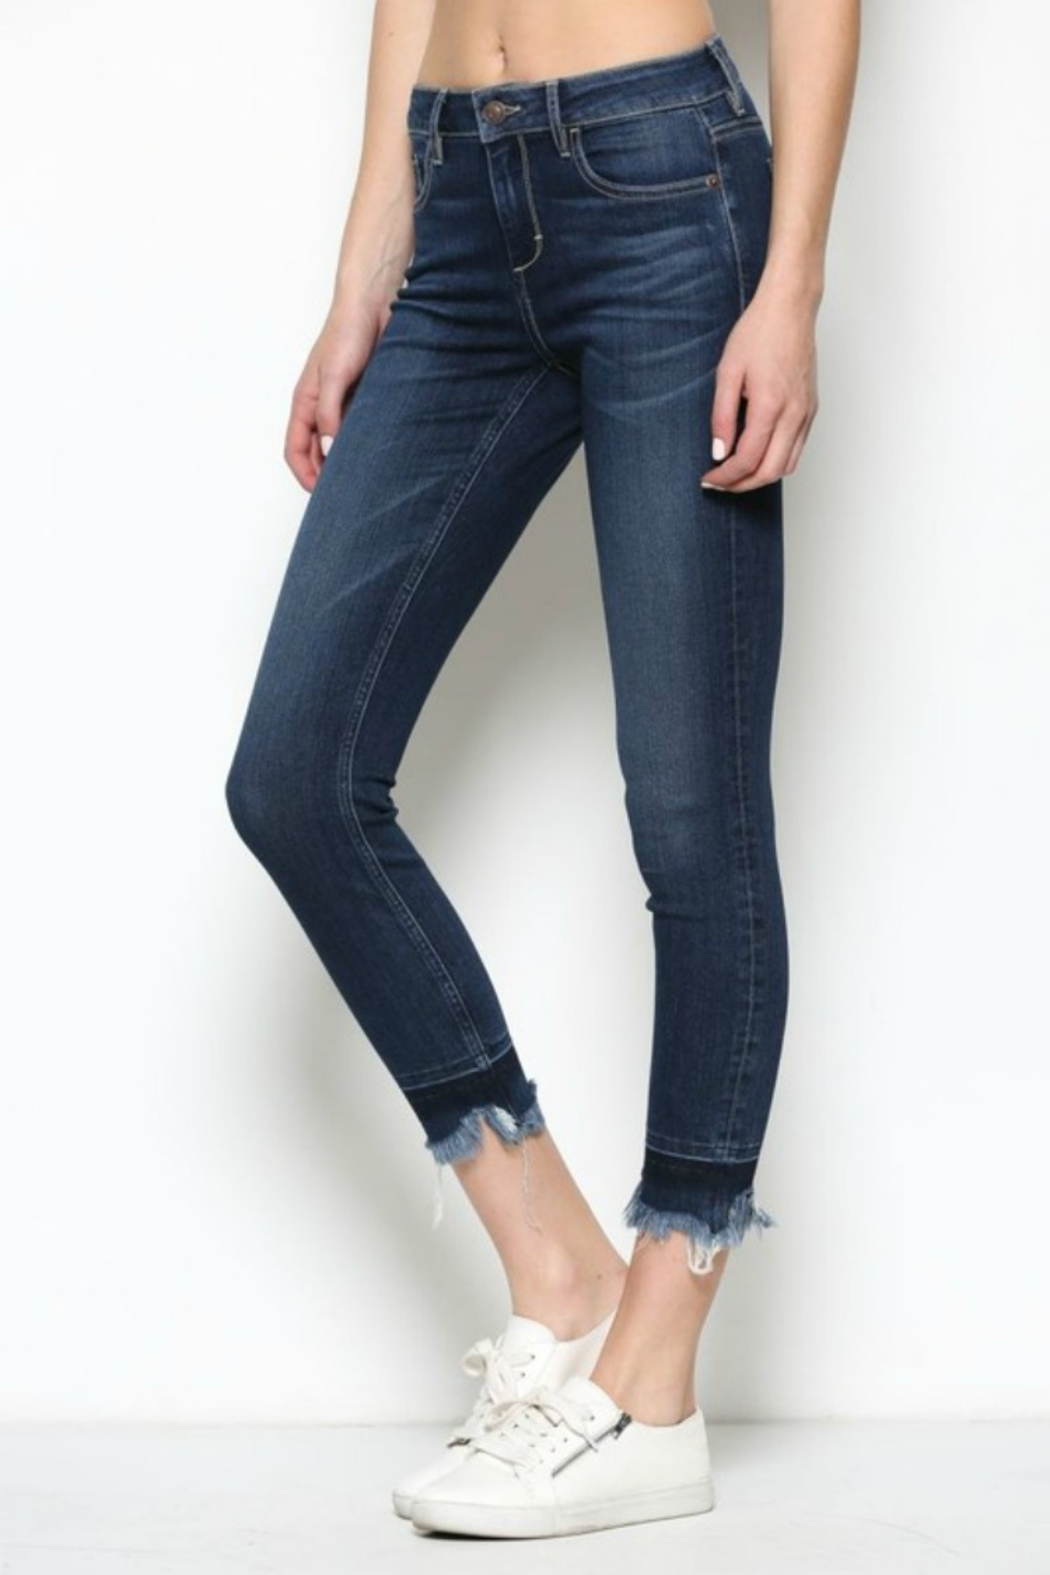 Hidden Jeans HD7452-DK  Dark Wash Released Frayed Hem Skinny - Side Cropped Image